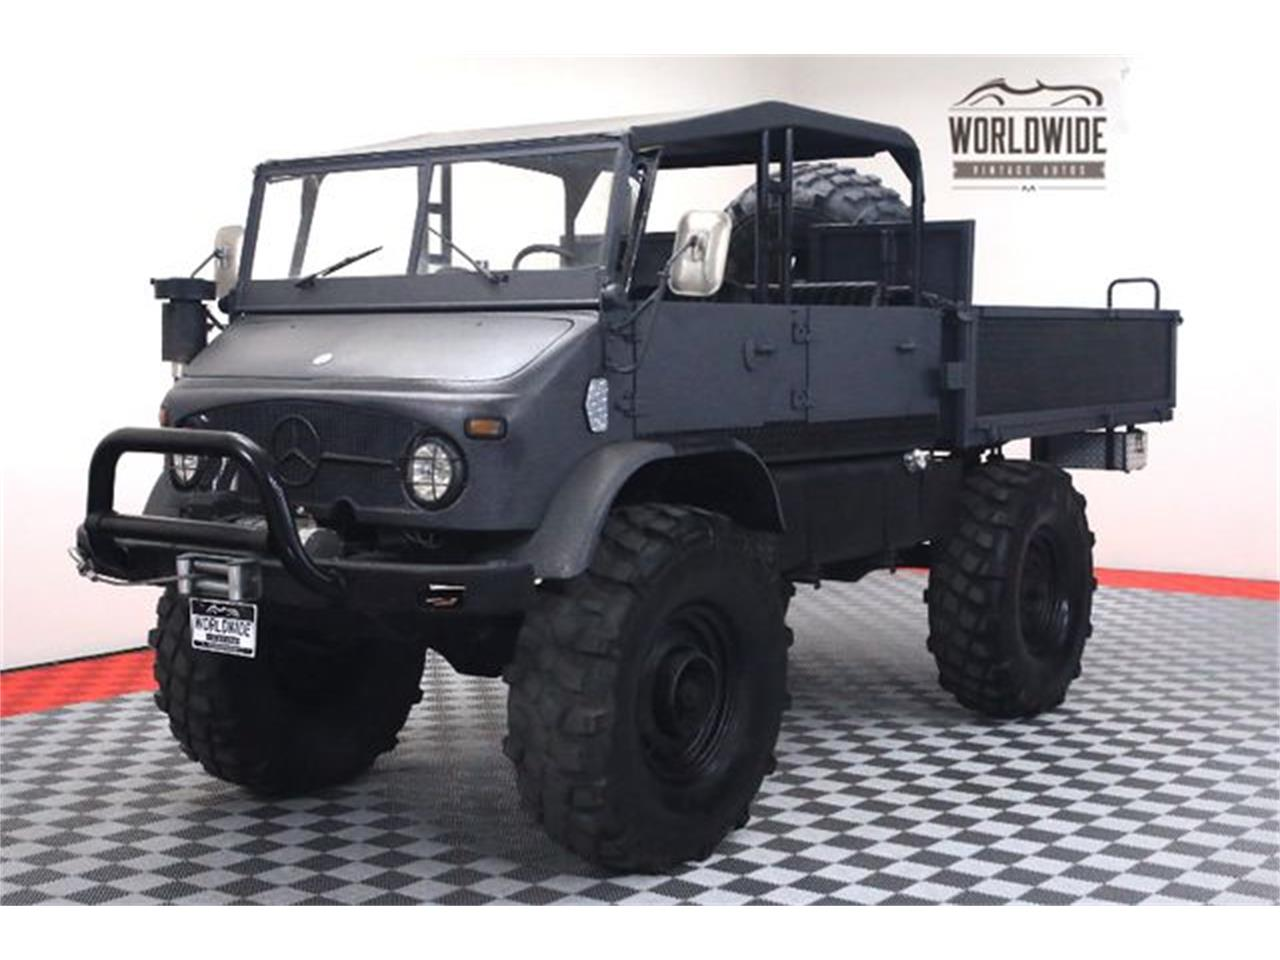 Unimog For Sale >> Unimog For Sale Colorado Best Car Update 2019 2020 By Thestellarcafe